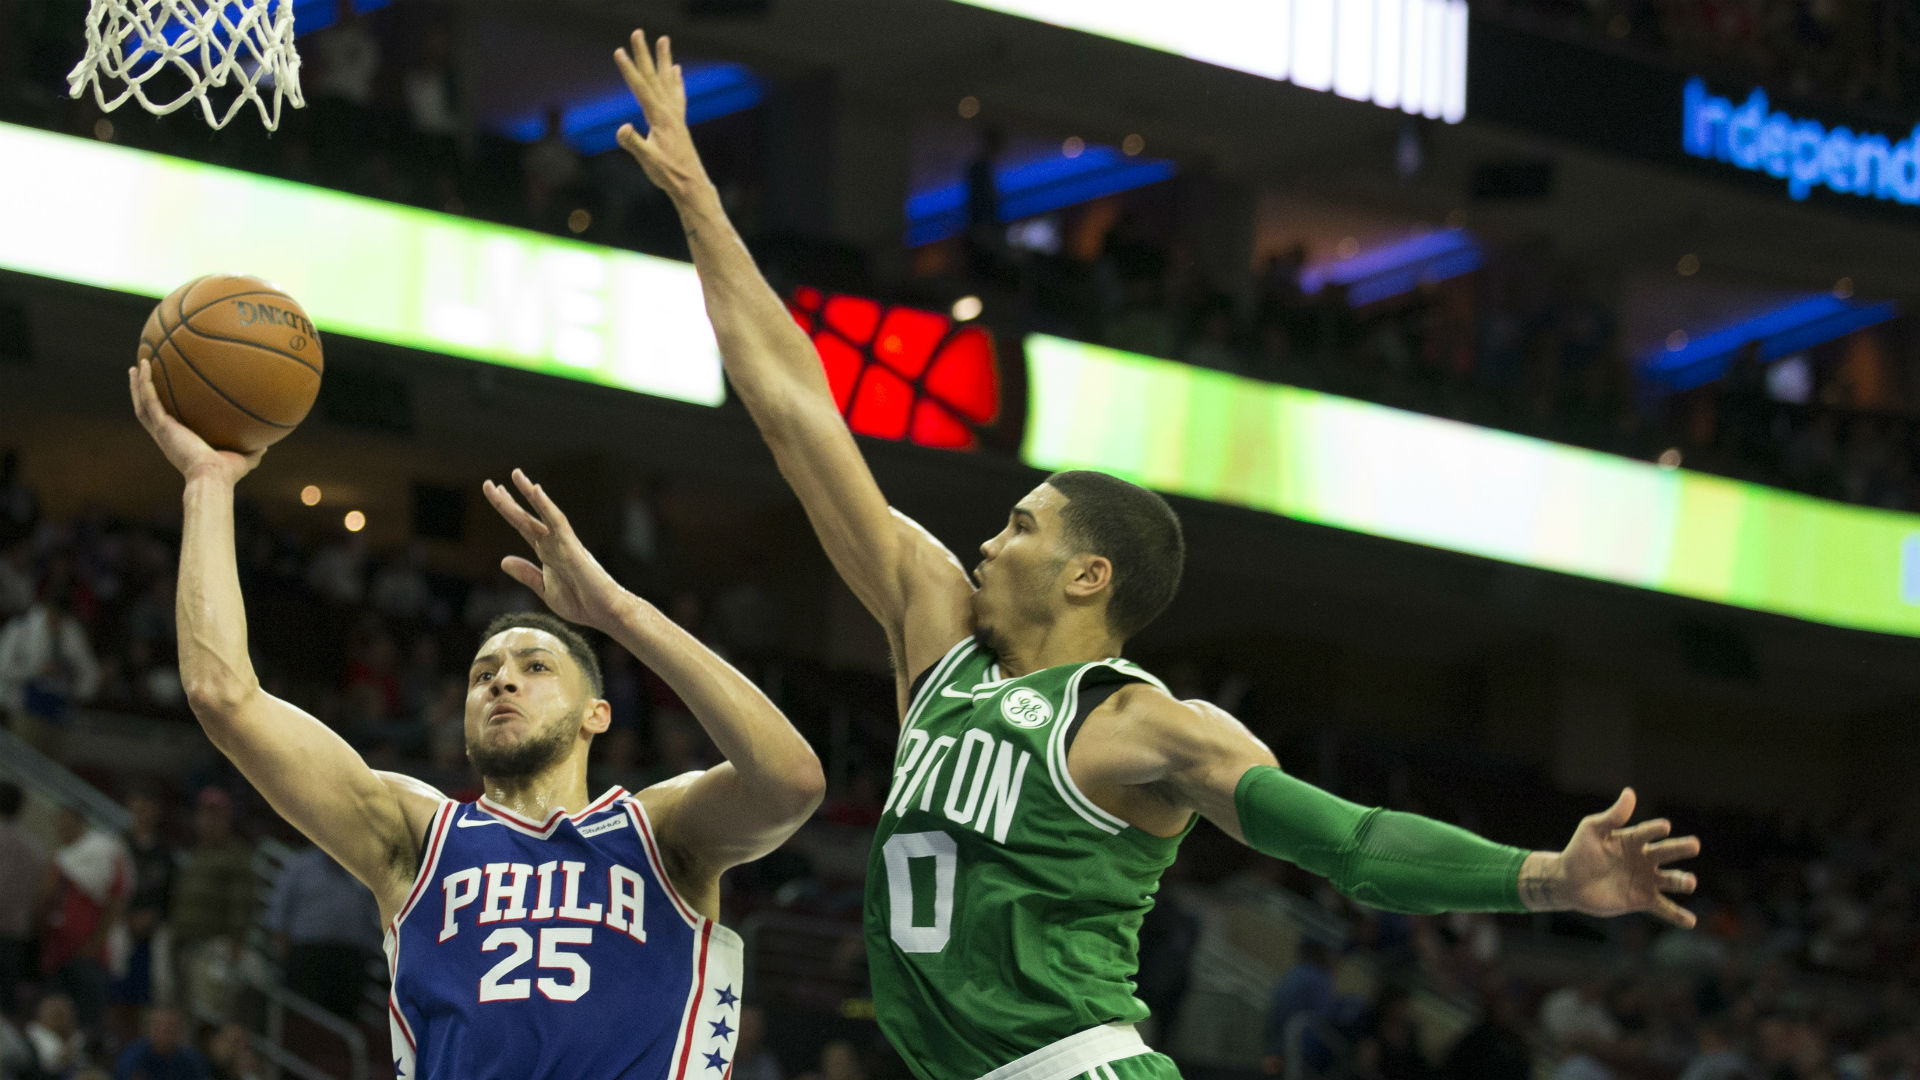 Celtics vs. 76ers 2018 odds: Boston the betting favorite in London matchup